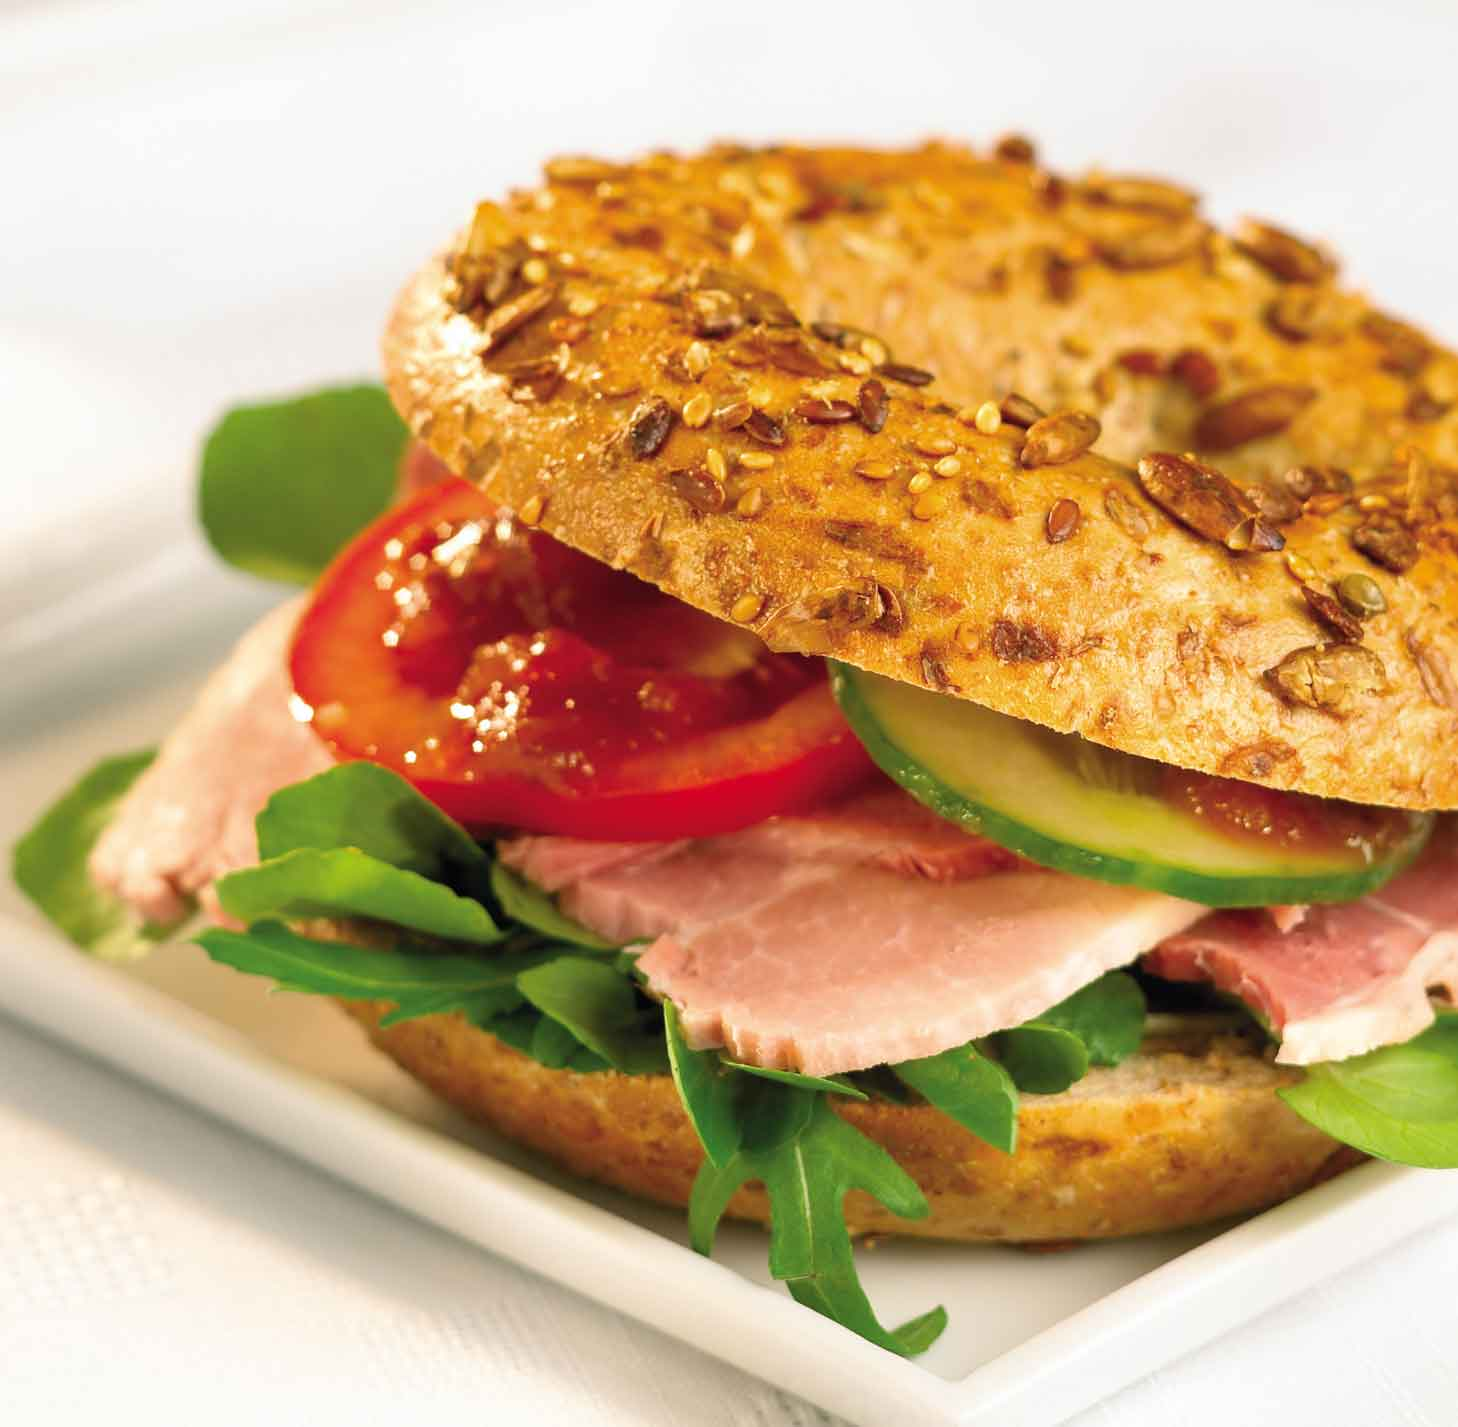 Healthy Option Bagel Todays News Tips: June 20, 2012